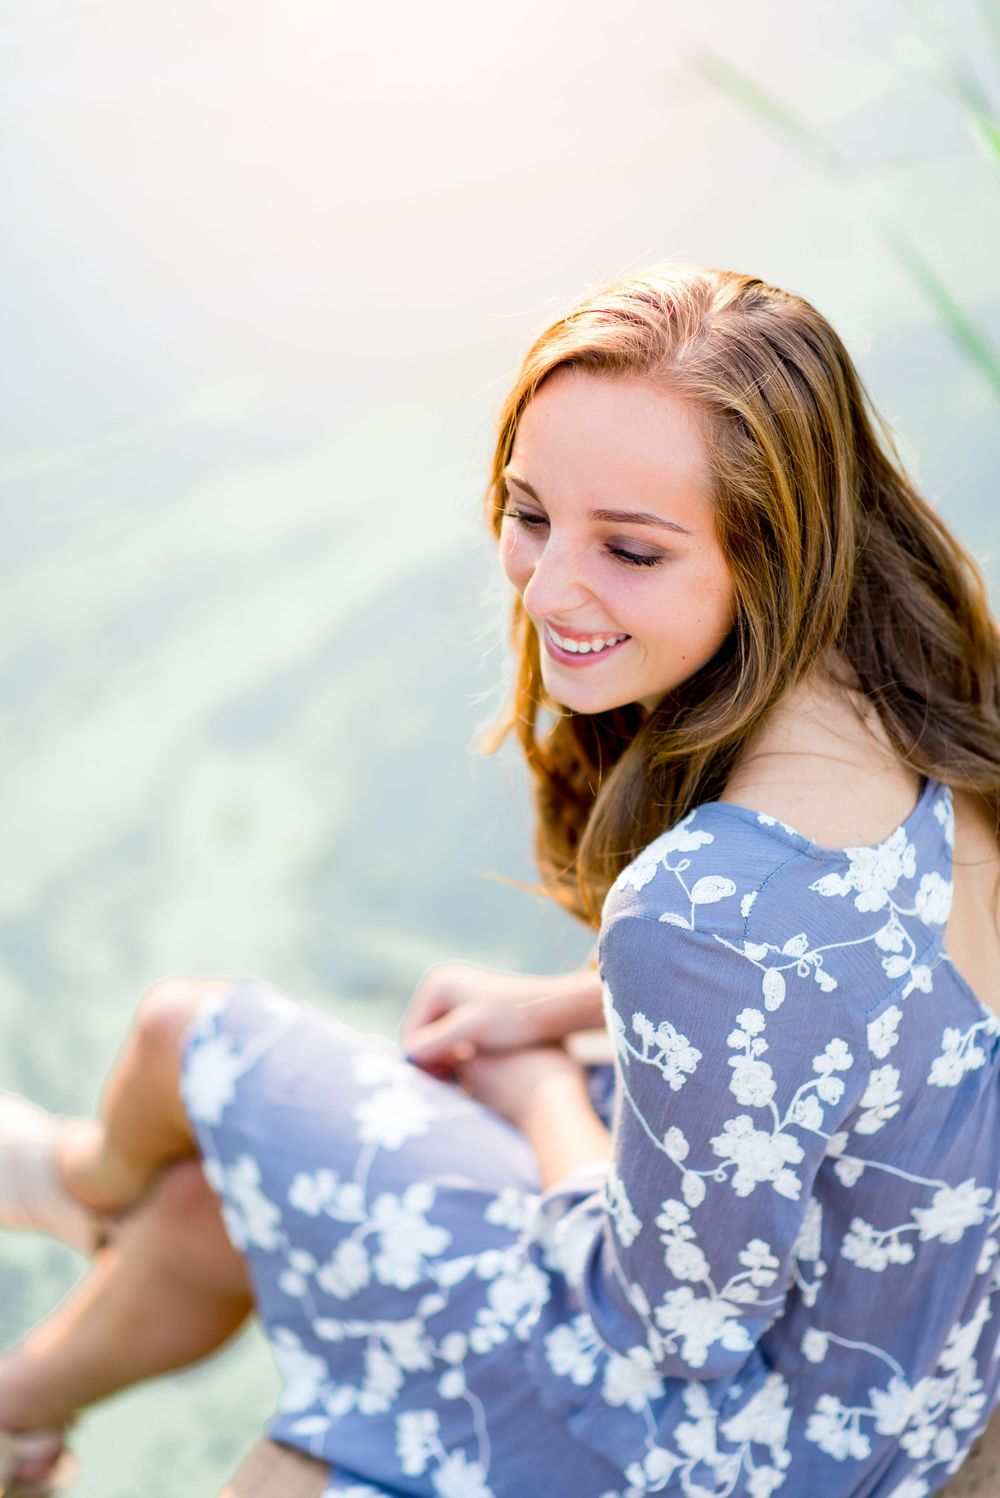 young girl in a periwinkle floral dress sitting on a dock at a pond smiling and looking to the side